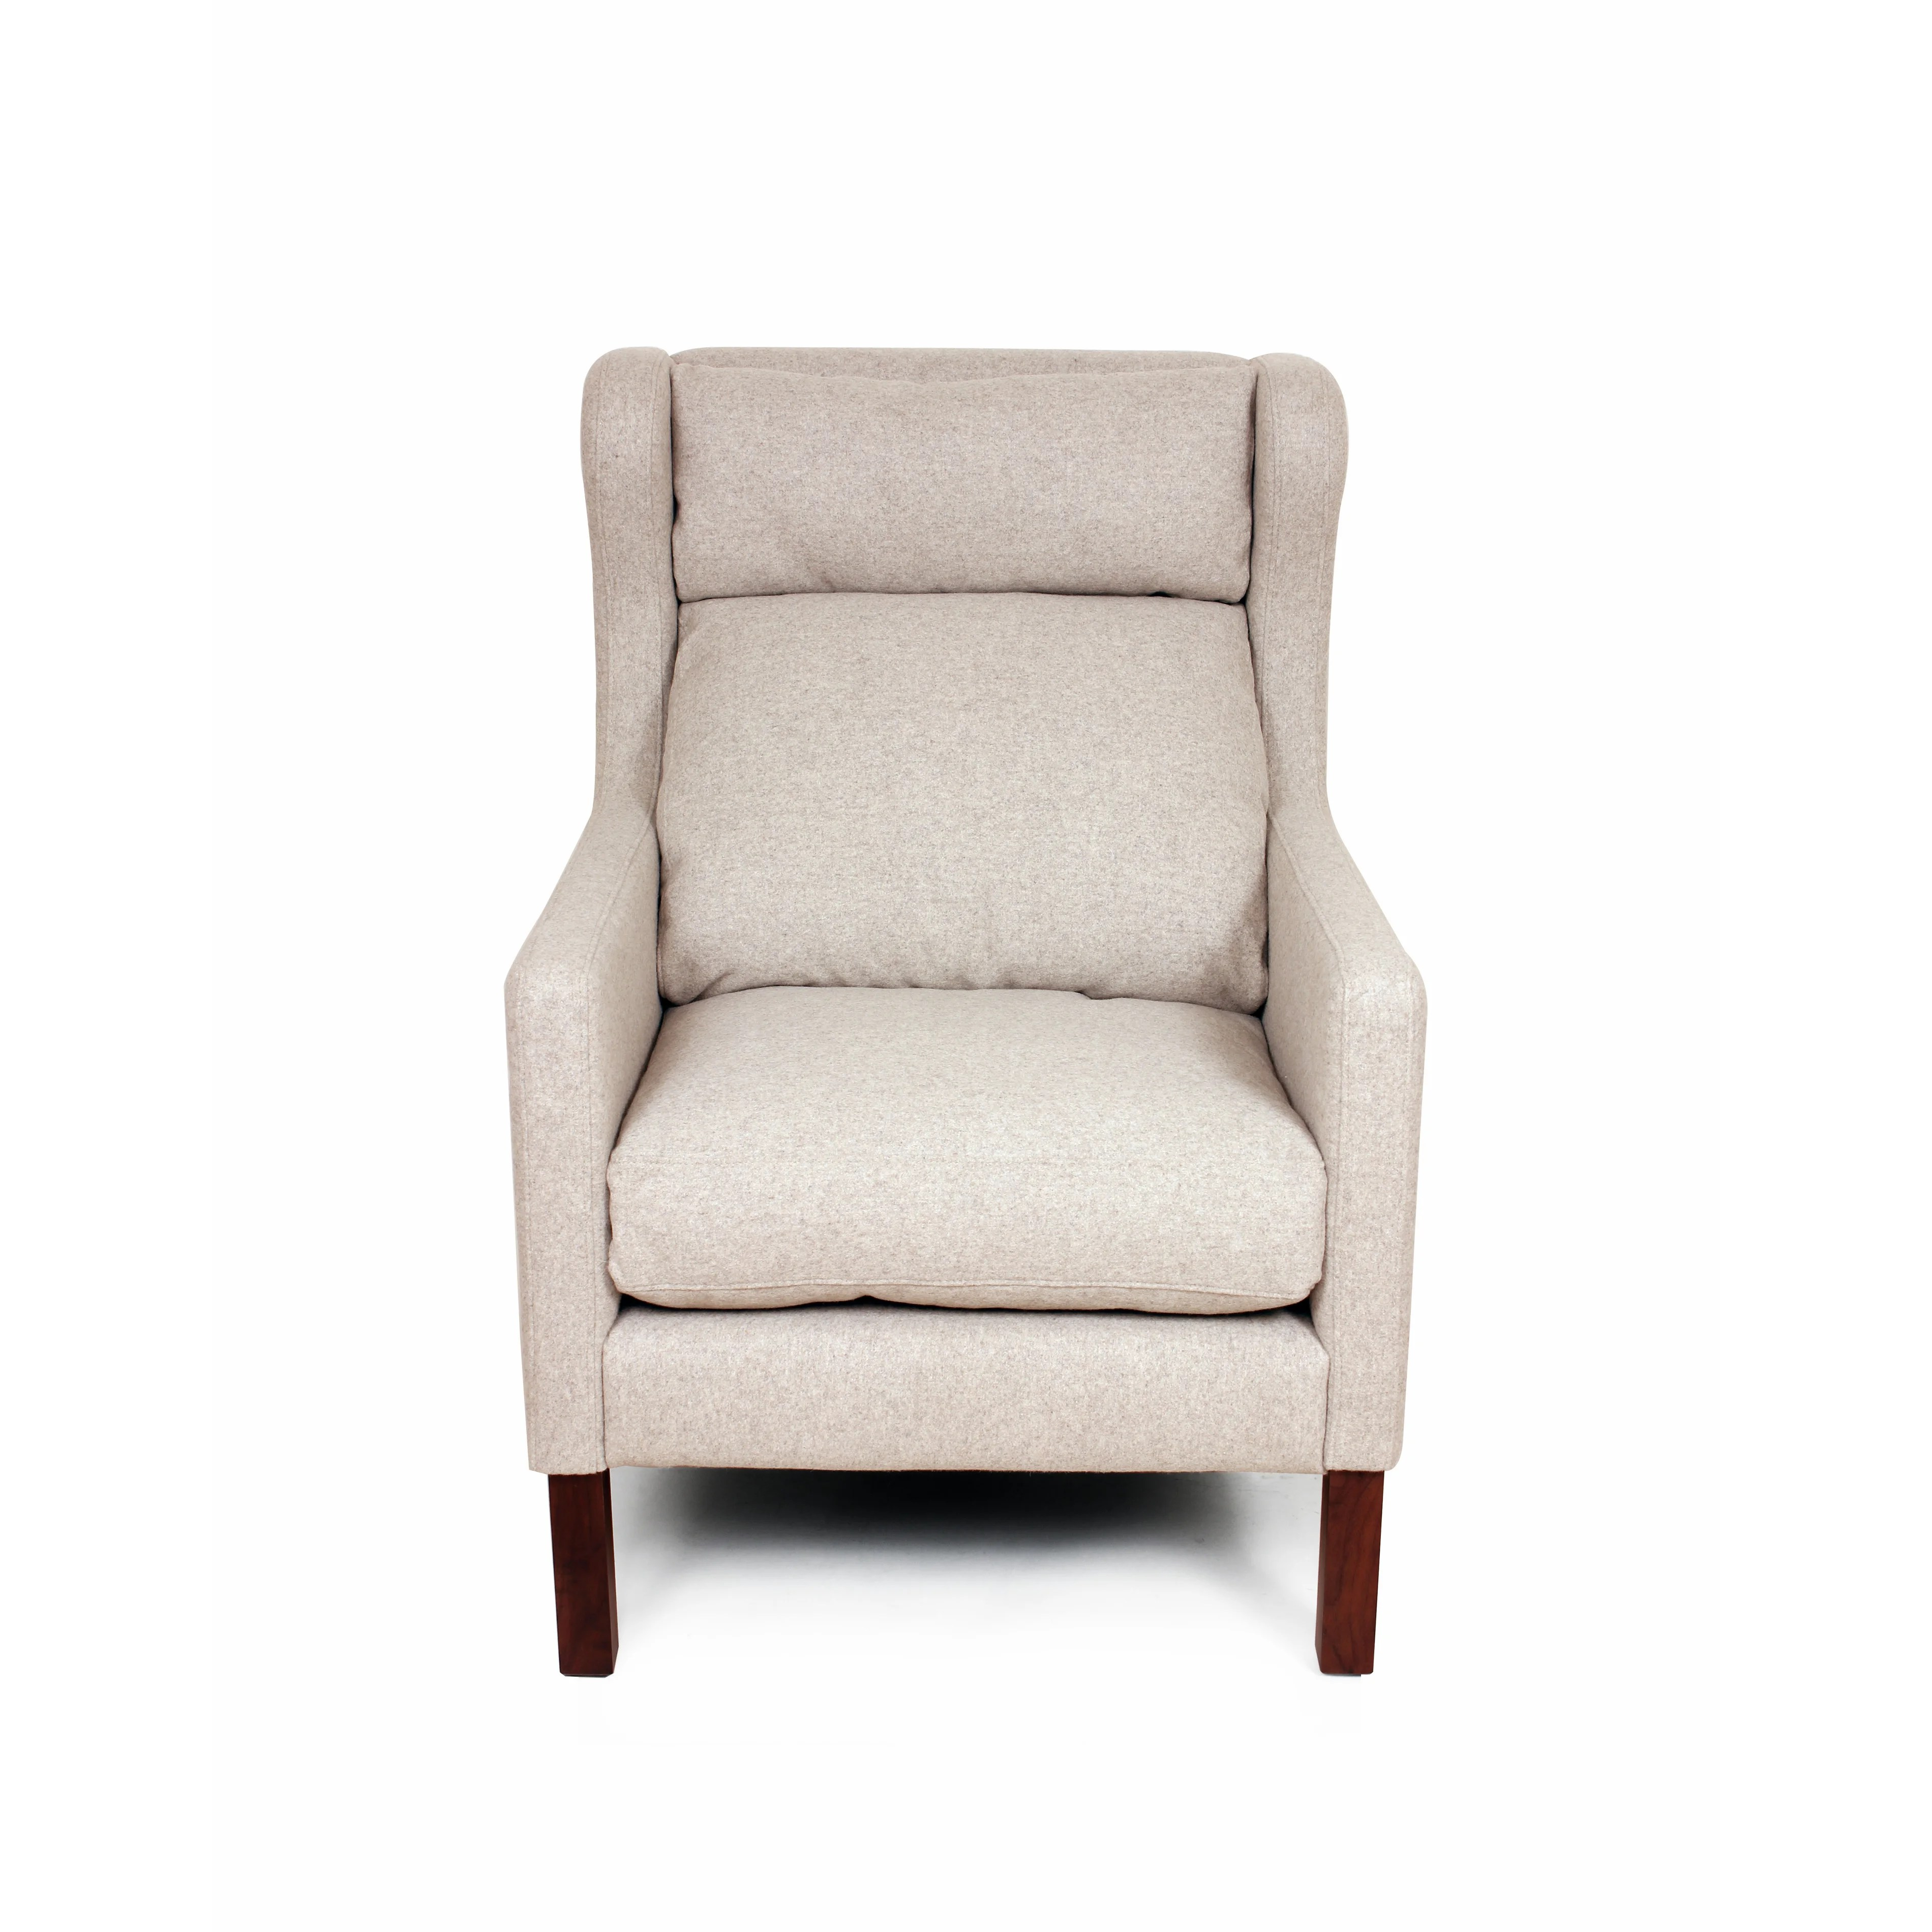 bernhard chair review avery's covers and more wing arm wayfair